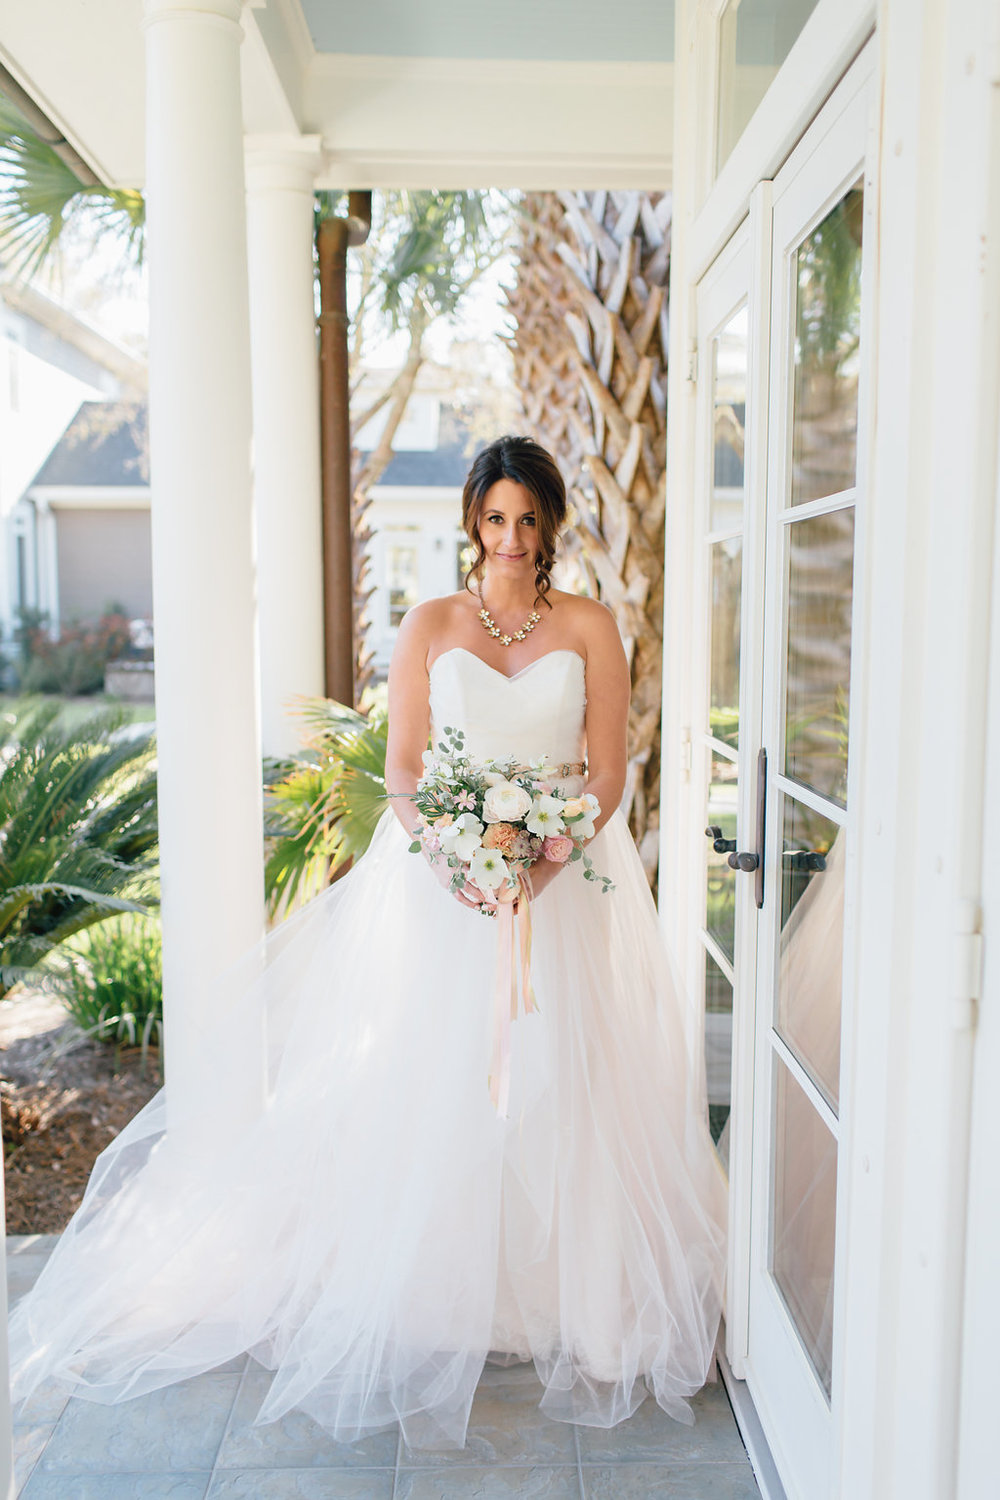 hannah-lane-photography-southern-weddings-blog-charleson-wedding-charleston-styled-shoot-ivory-and-beau-bridal-boutique-blush-by-hayley-paige-candi-blush-tulle-wedding-dress-savannah-bridal-boutique-savannah-wedding-dresses-rosegold-sash-26.jpg